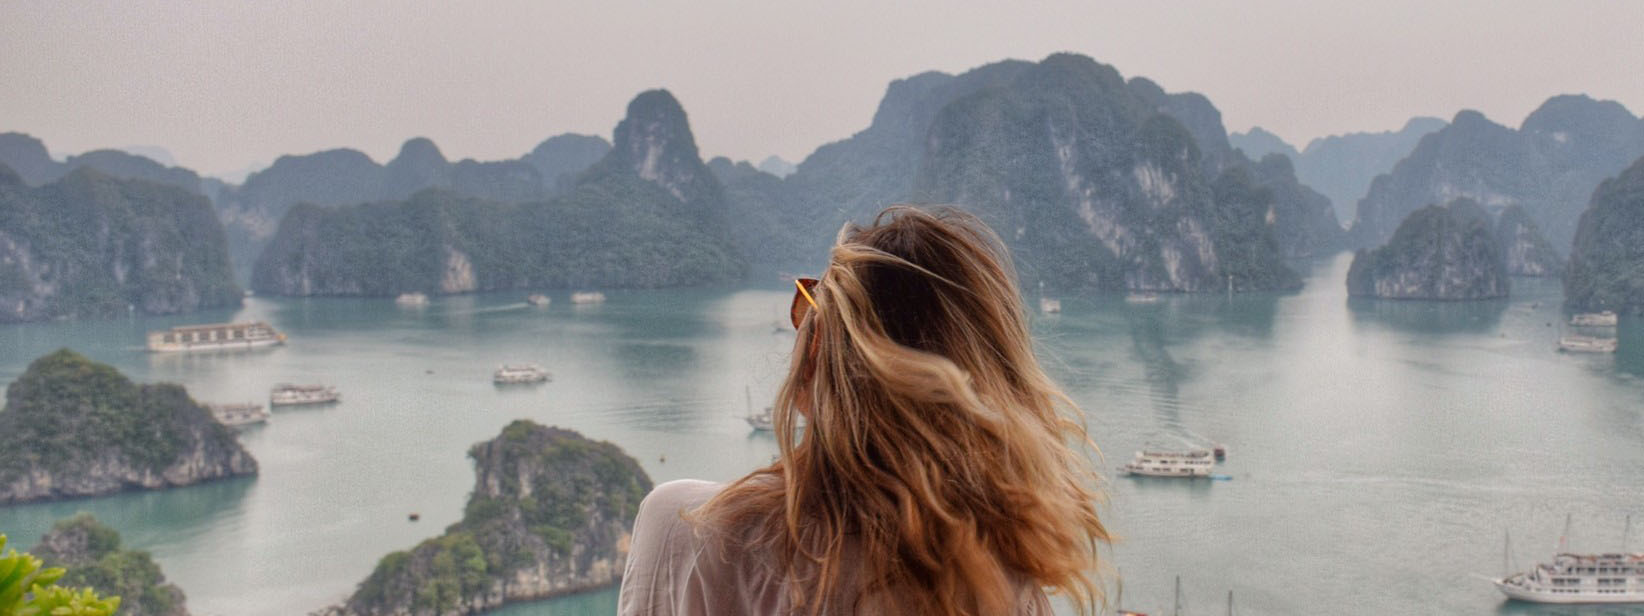 Halong Bay, no norte do Vietnã | Créditos: Lala Rebelo